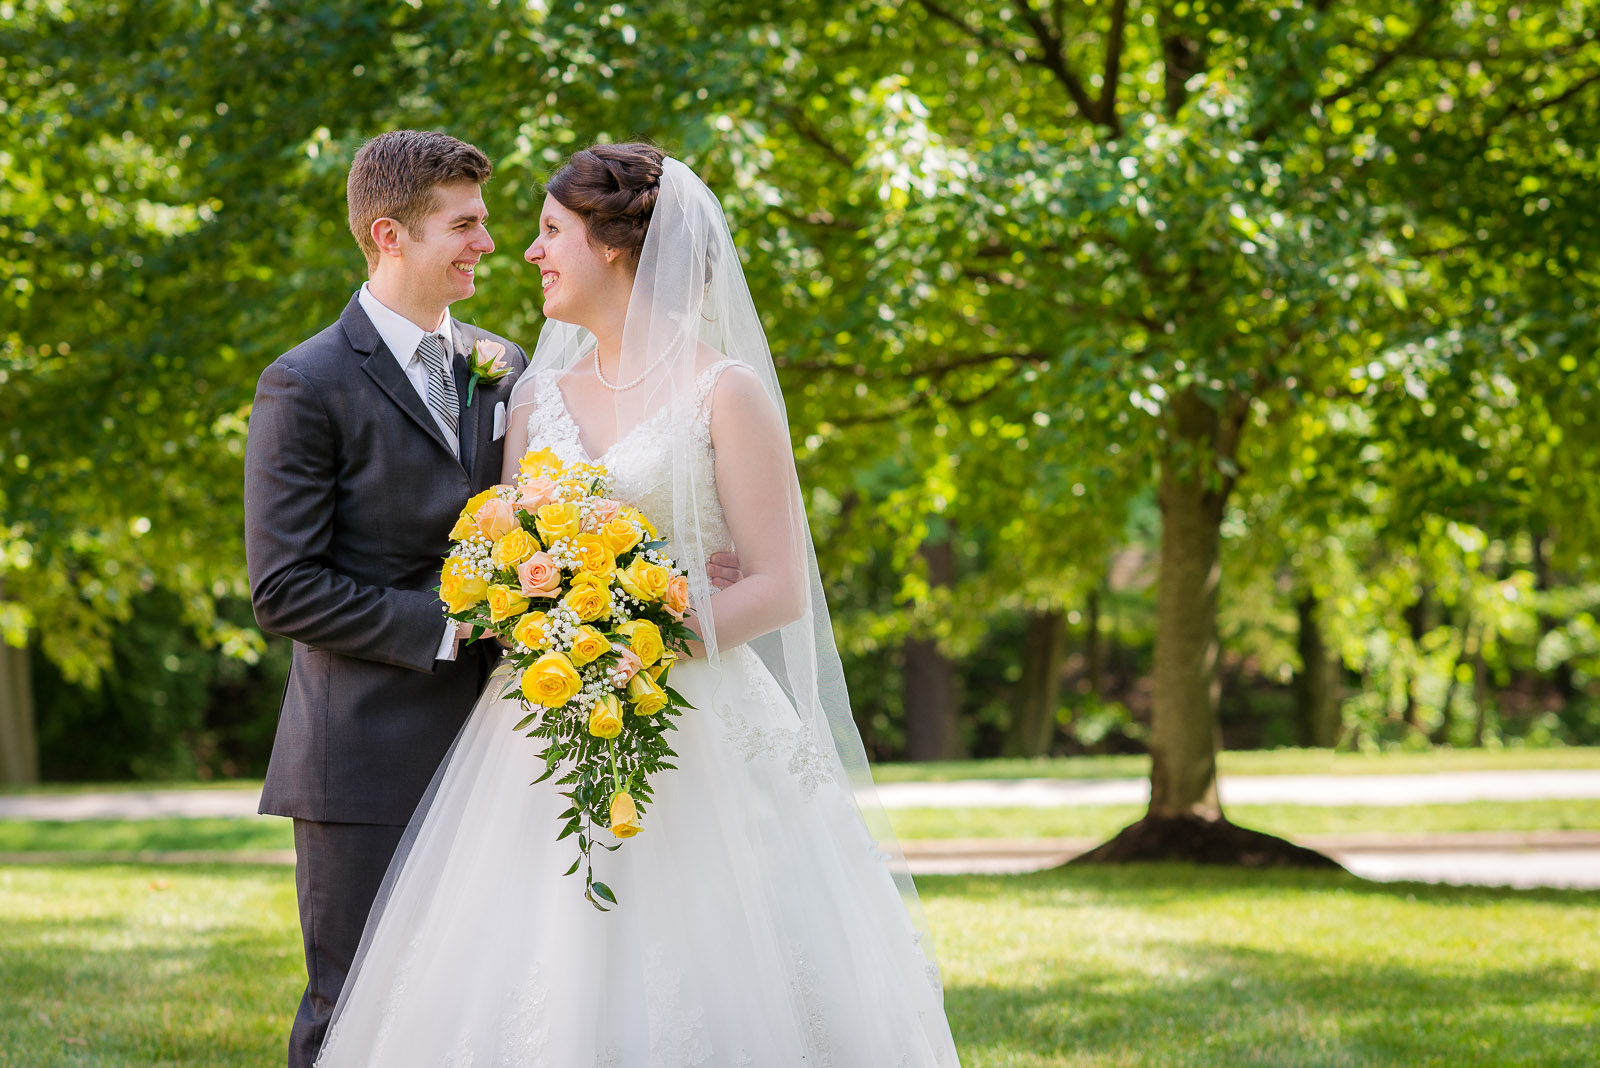 Eric_and_Christy_Photography_Blog_Wedding_Kelly_Michael-26